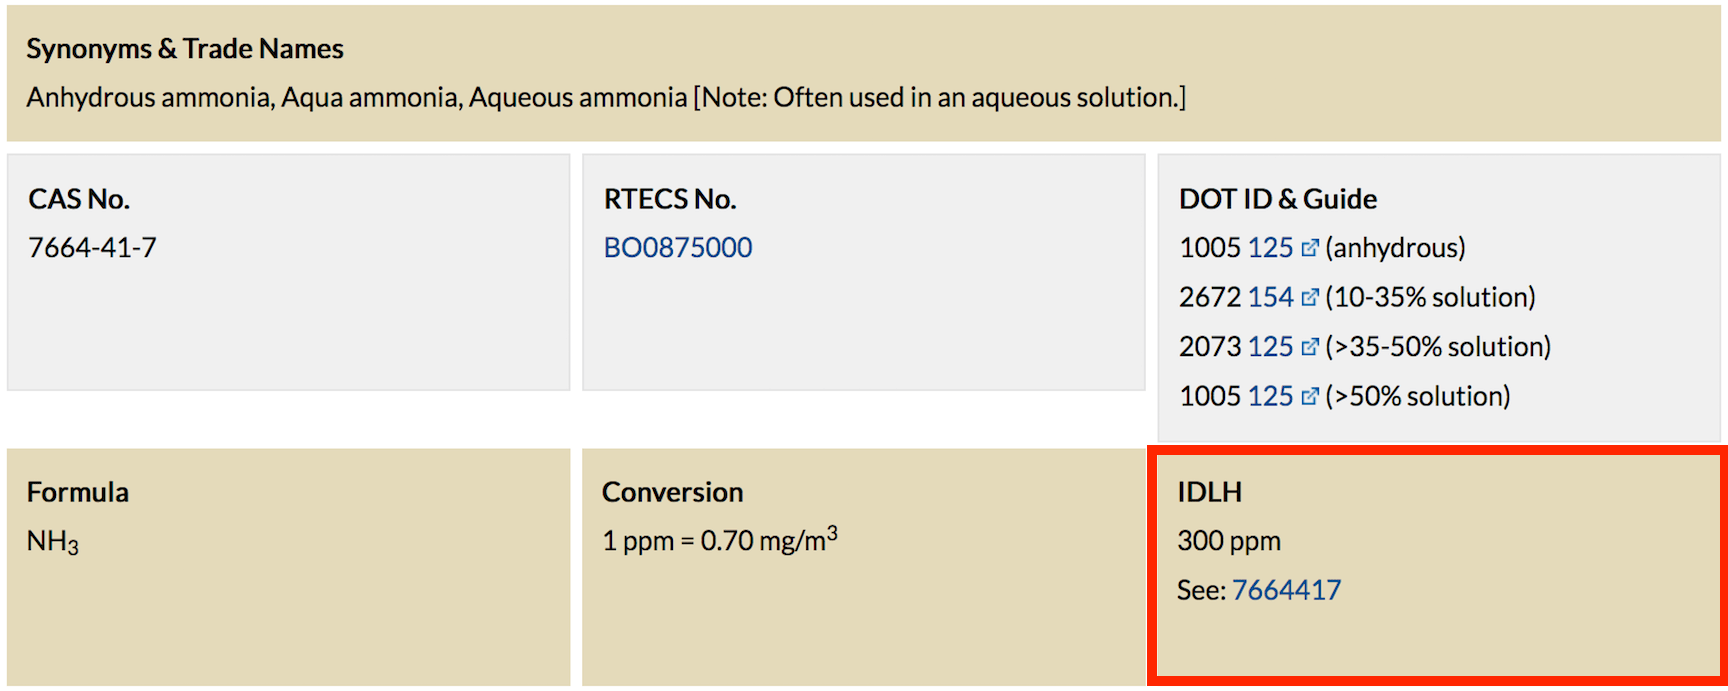 Potentially Very Unpleasant Gas To Be Around A Quick Look At Some Data Taken From The Cdc Niosh Web Site Tells You Why It S Best Avoided In Any